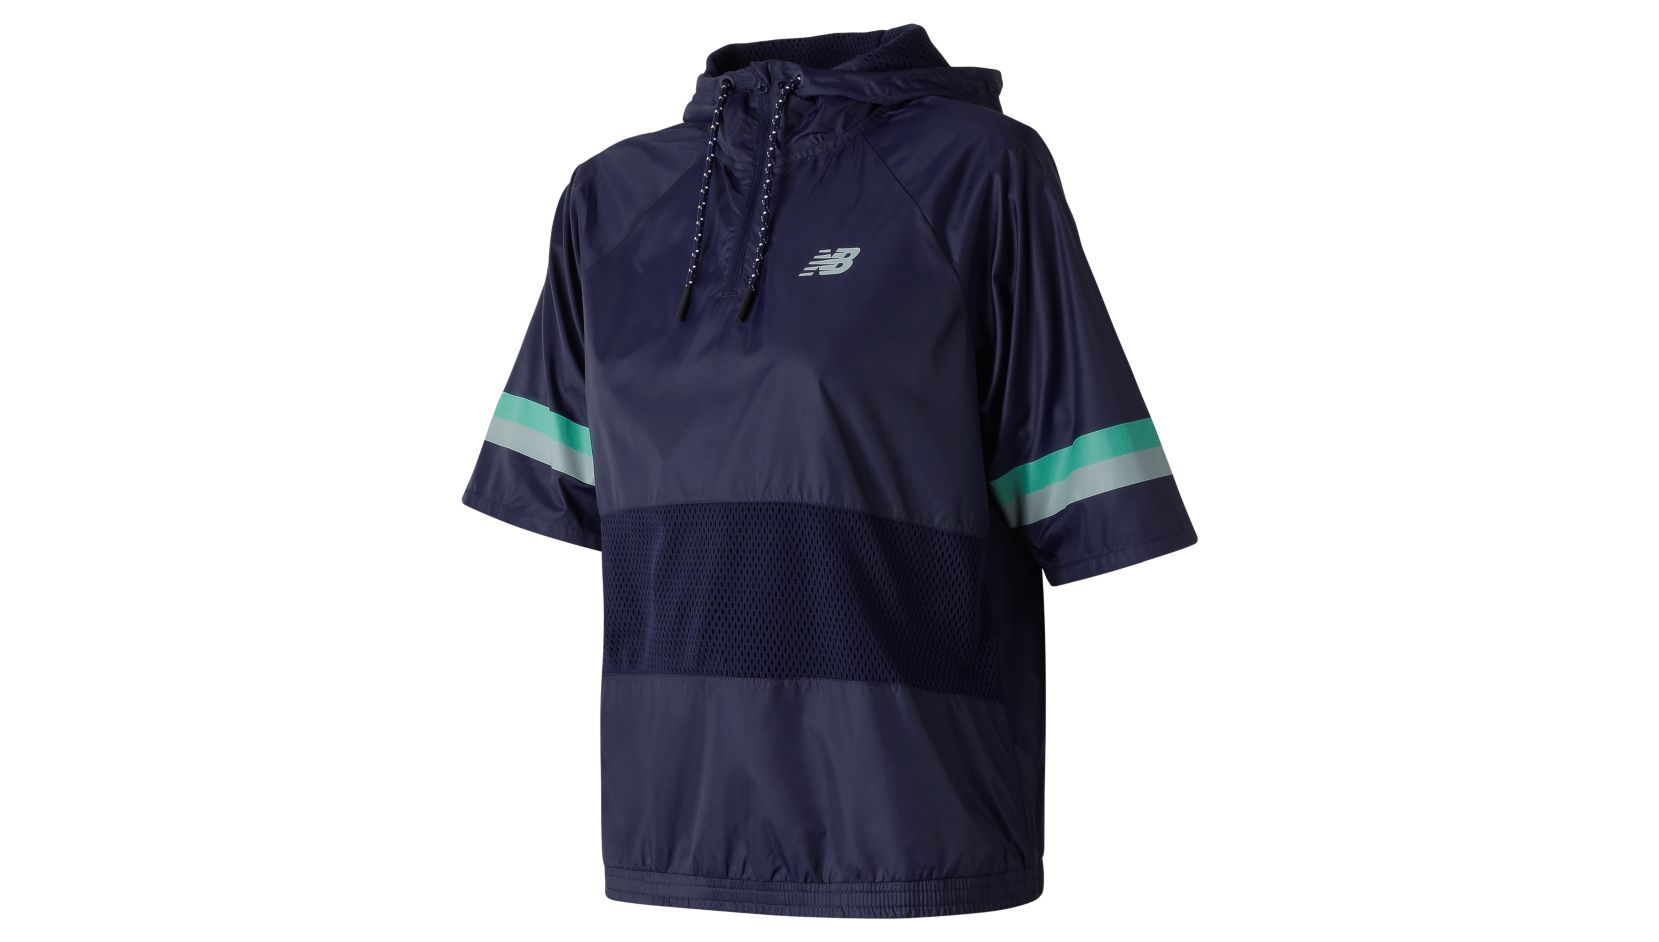 NB ATHLETICS SS WINDBREAKER PULL OVER nb athletics windbreaker pullover